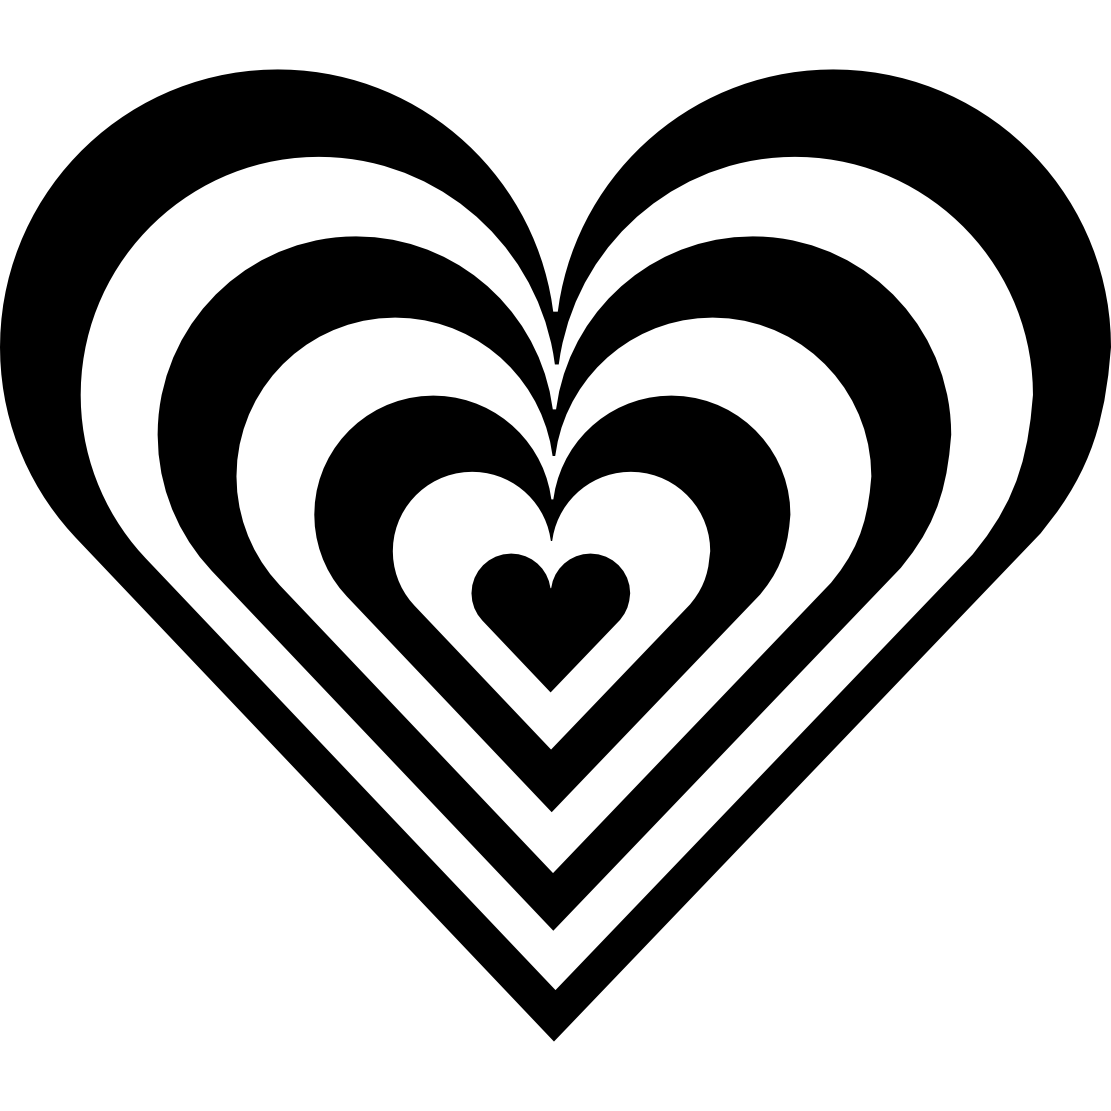 Clip Art Black And White Heart Clipart clipart heart black and white panda free images